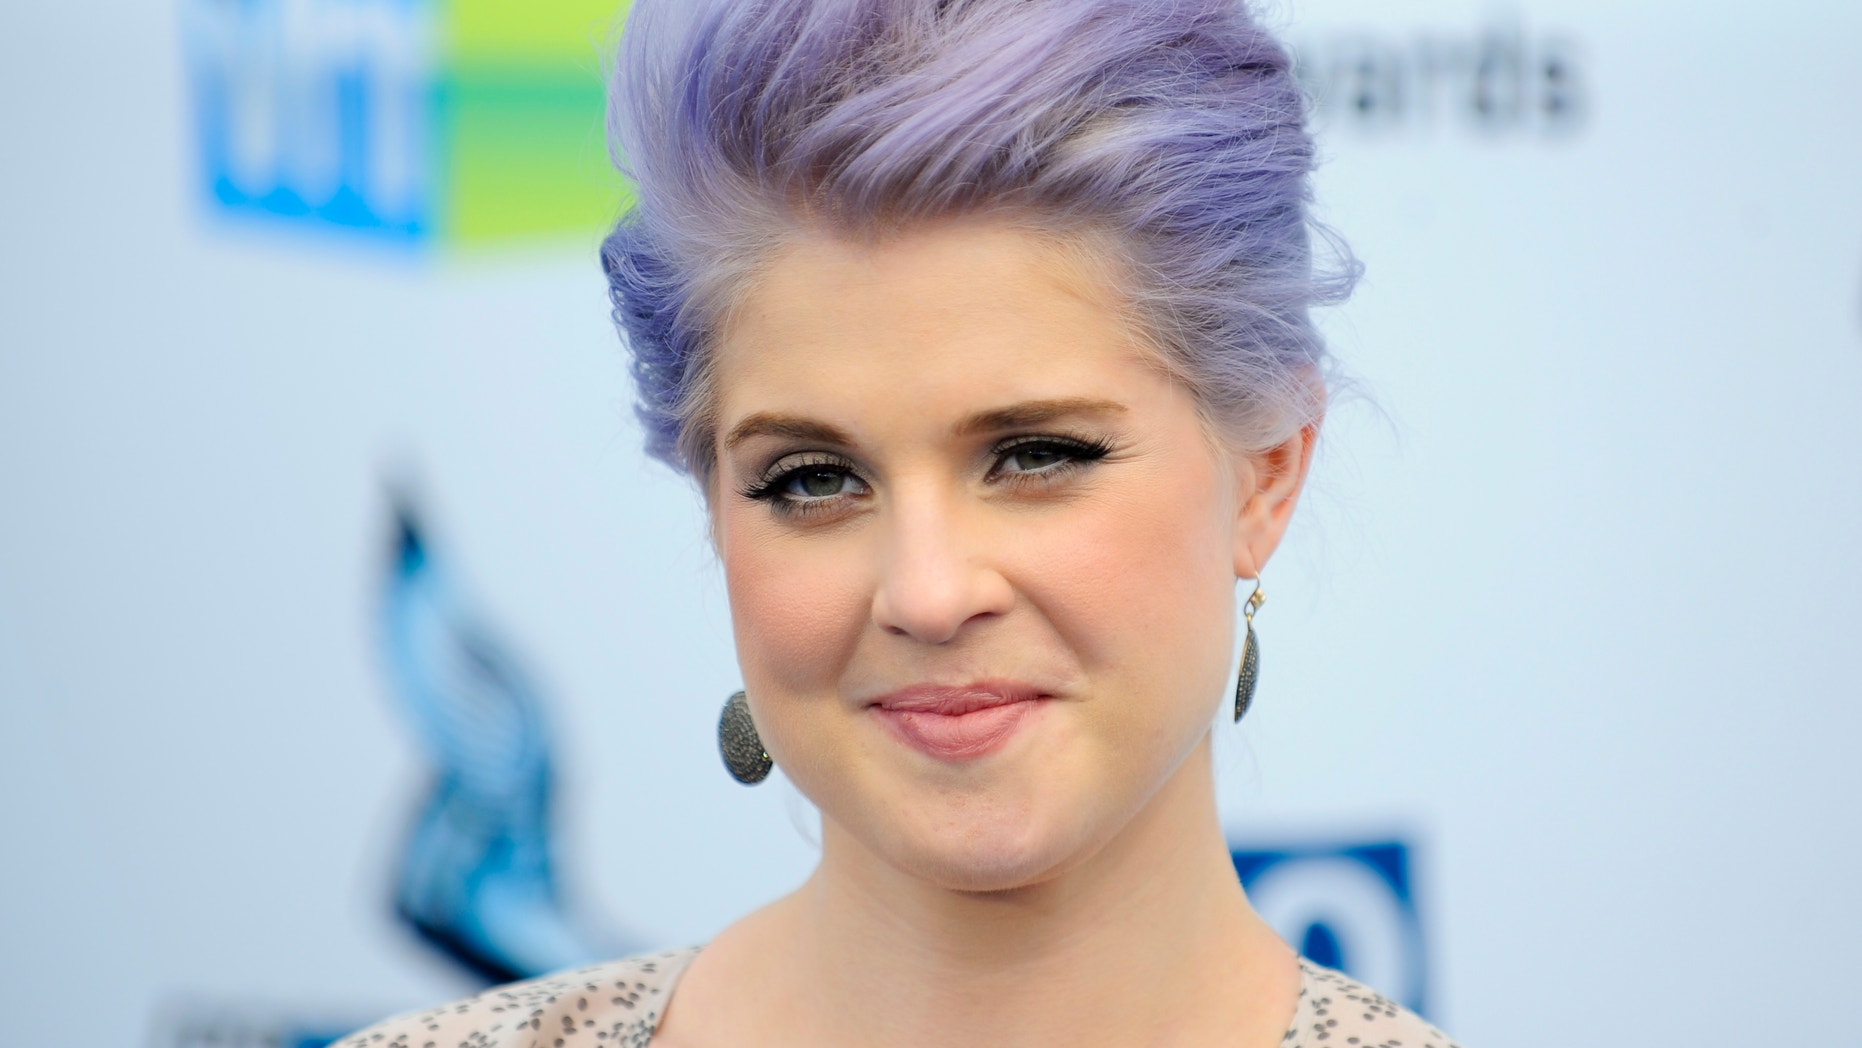 Kelly Osbourne had an accident during New York City's Pride Parade on Sunday.